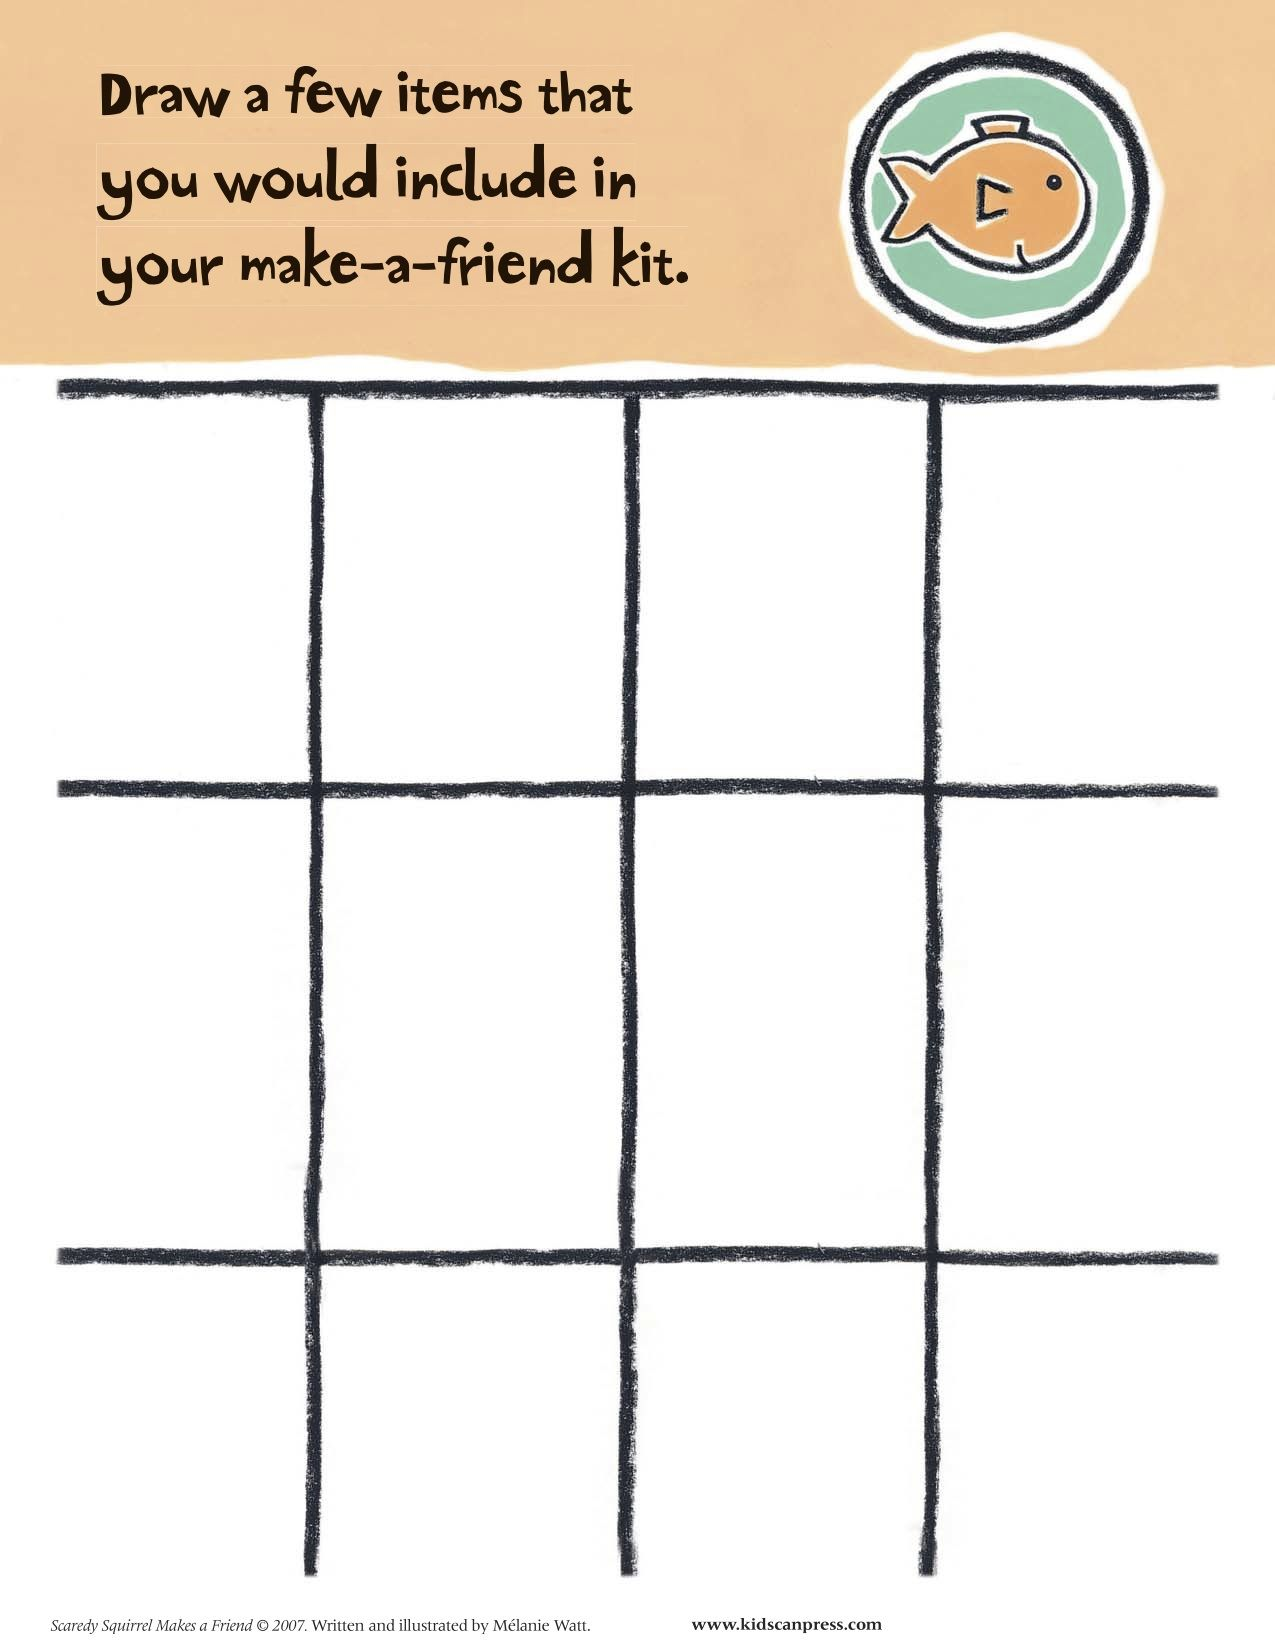 Draw A Few Items You Would Include In Your Make A Friend